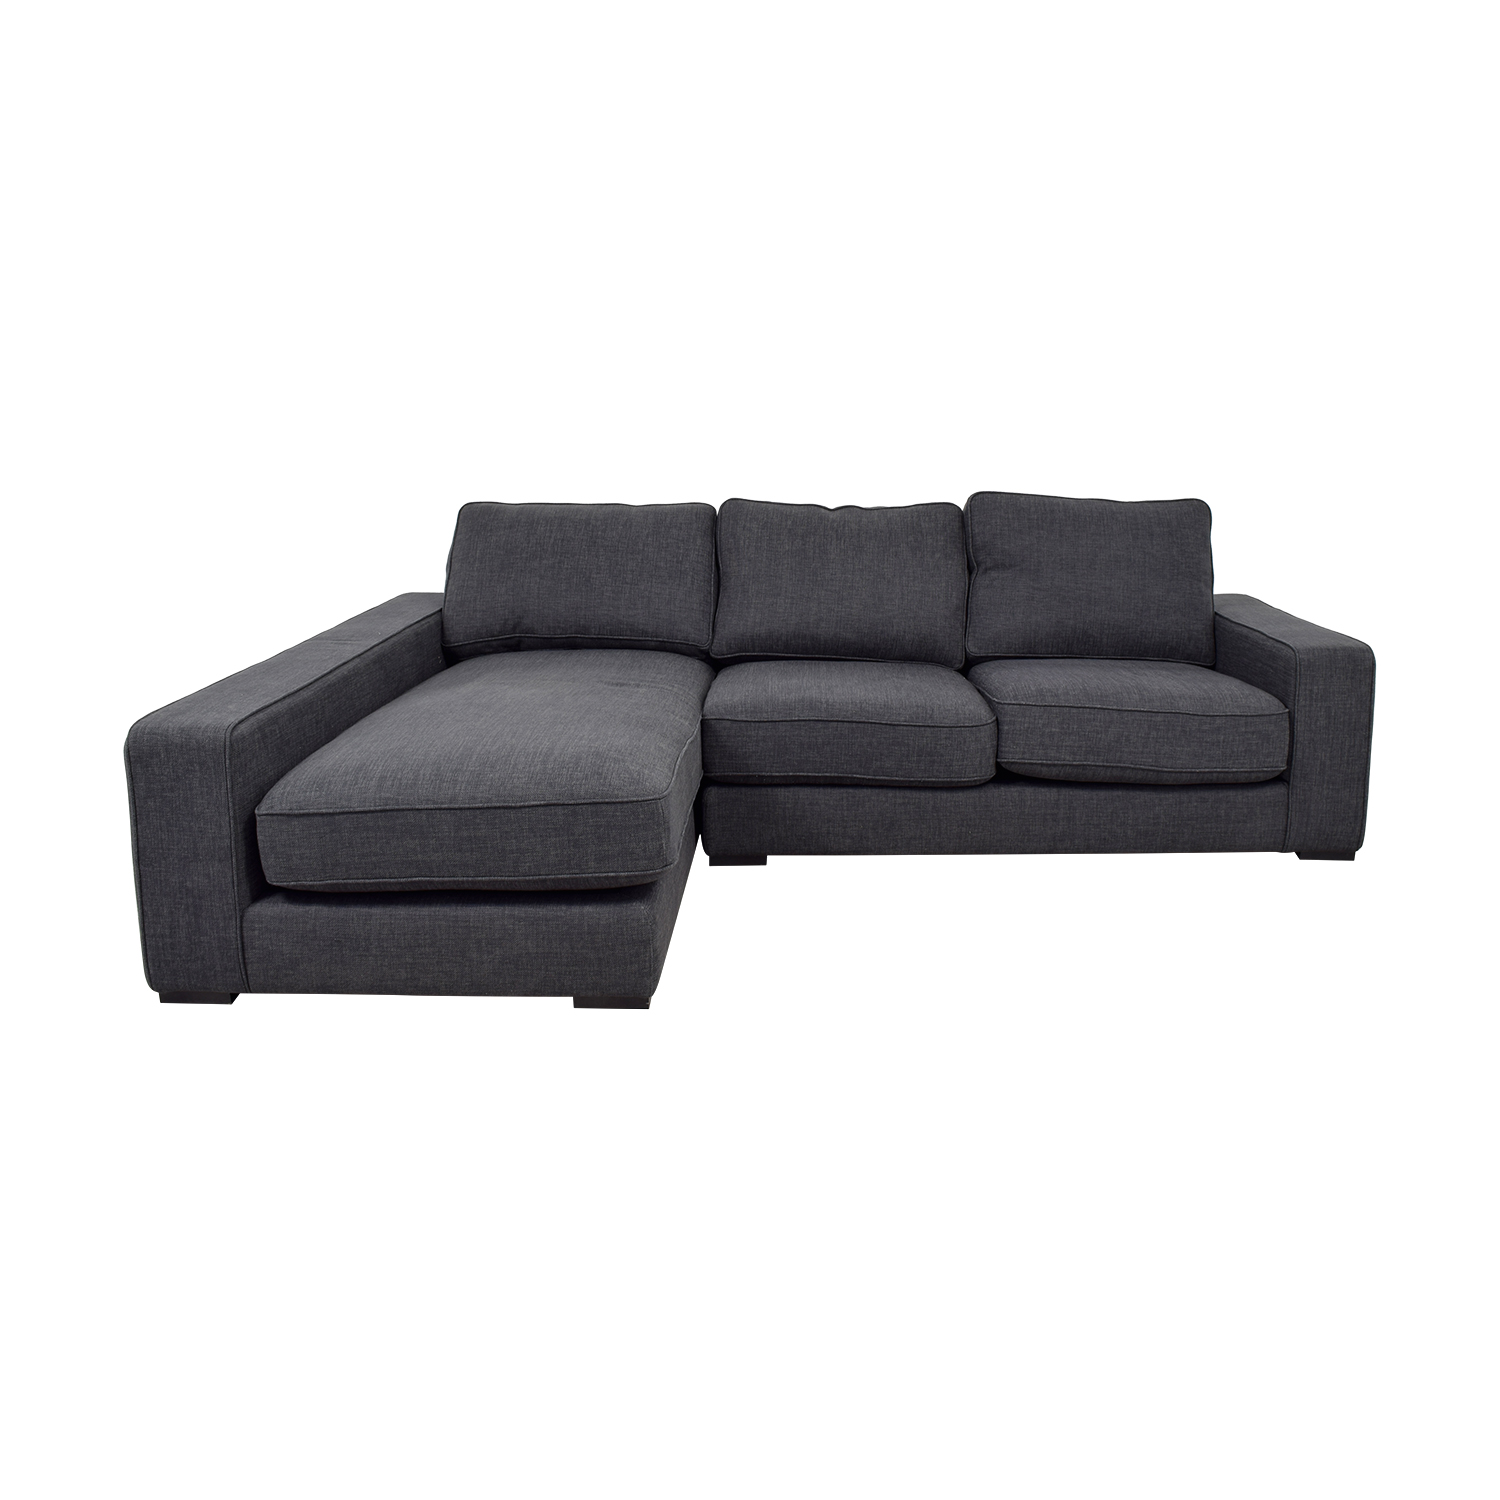 Ainsley	Pebble Weave Left Chaise Sectional sale